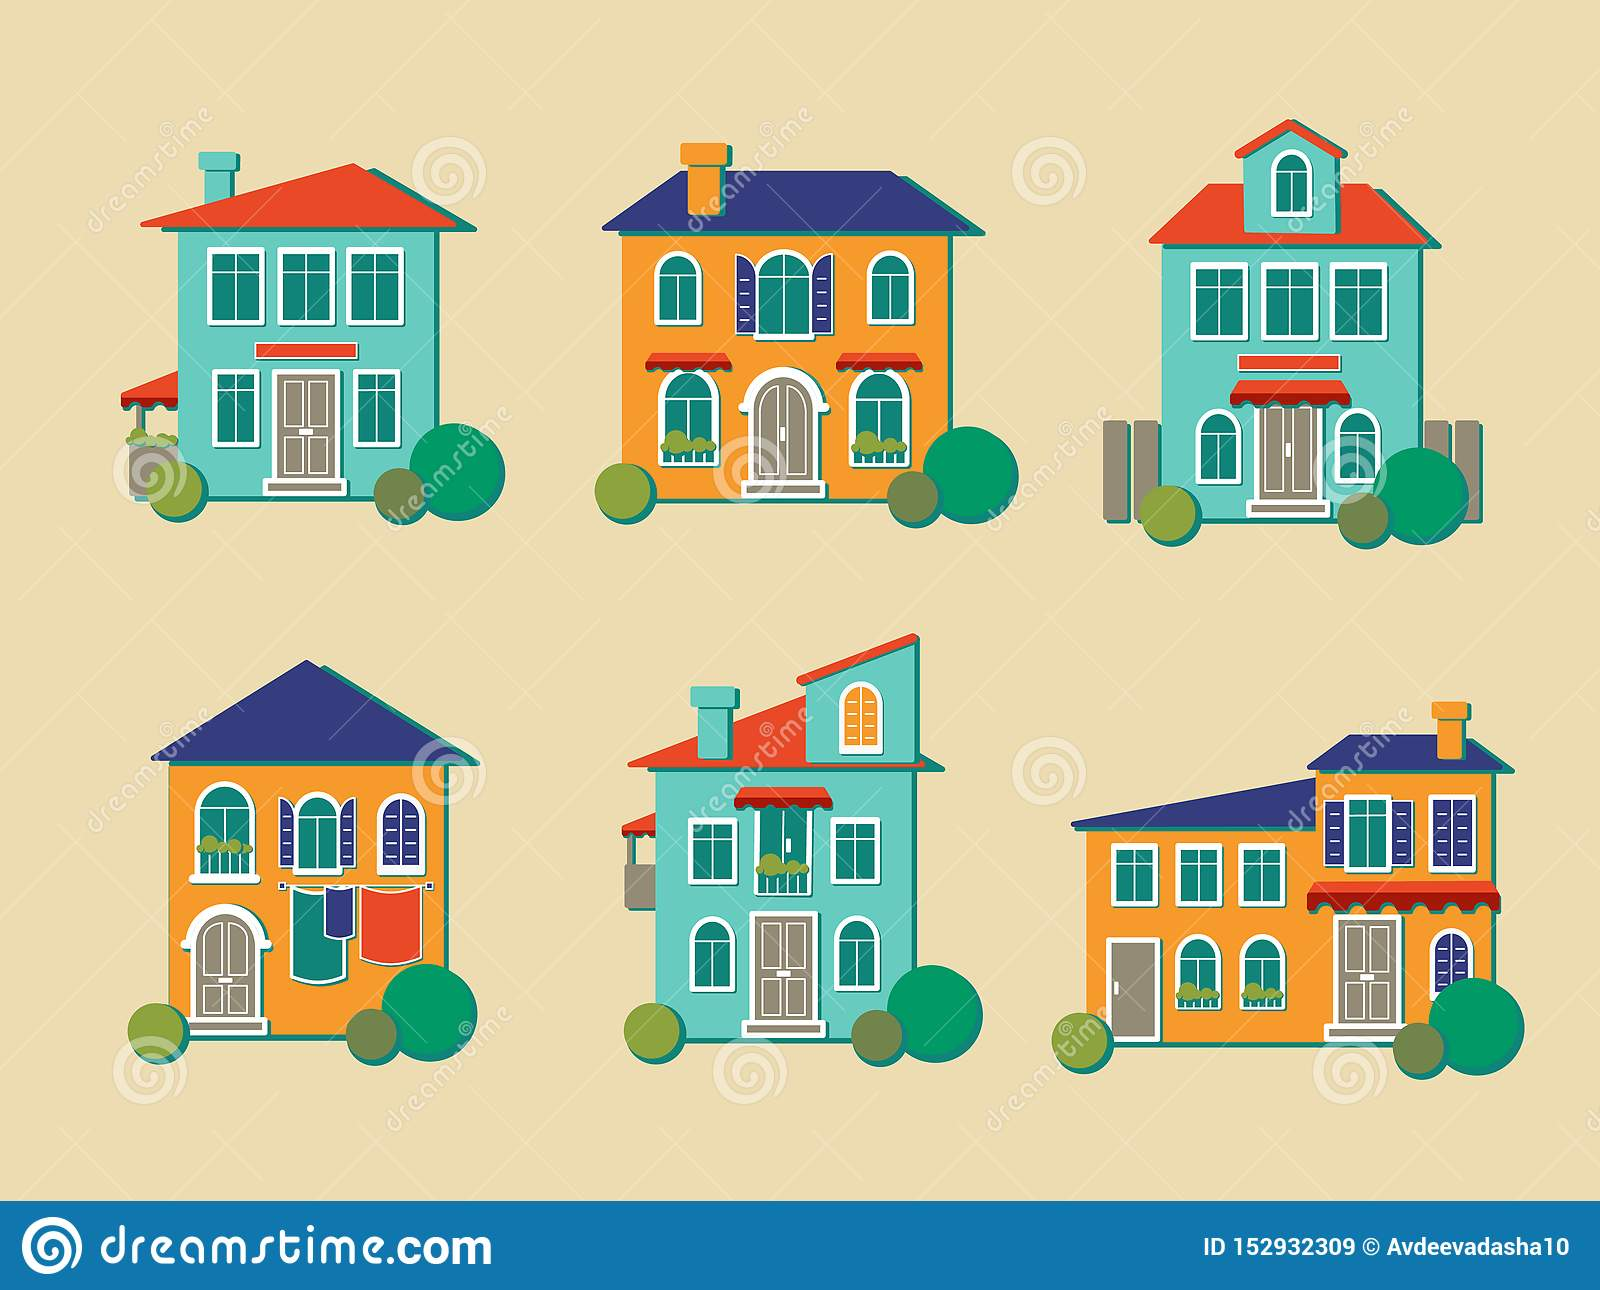 Vector icons of houses in flat style